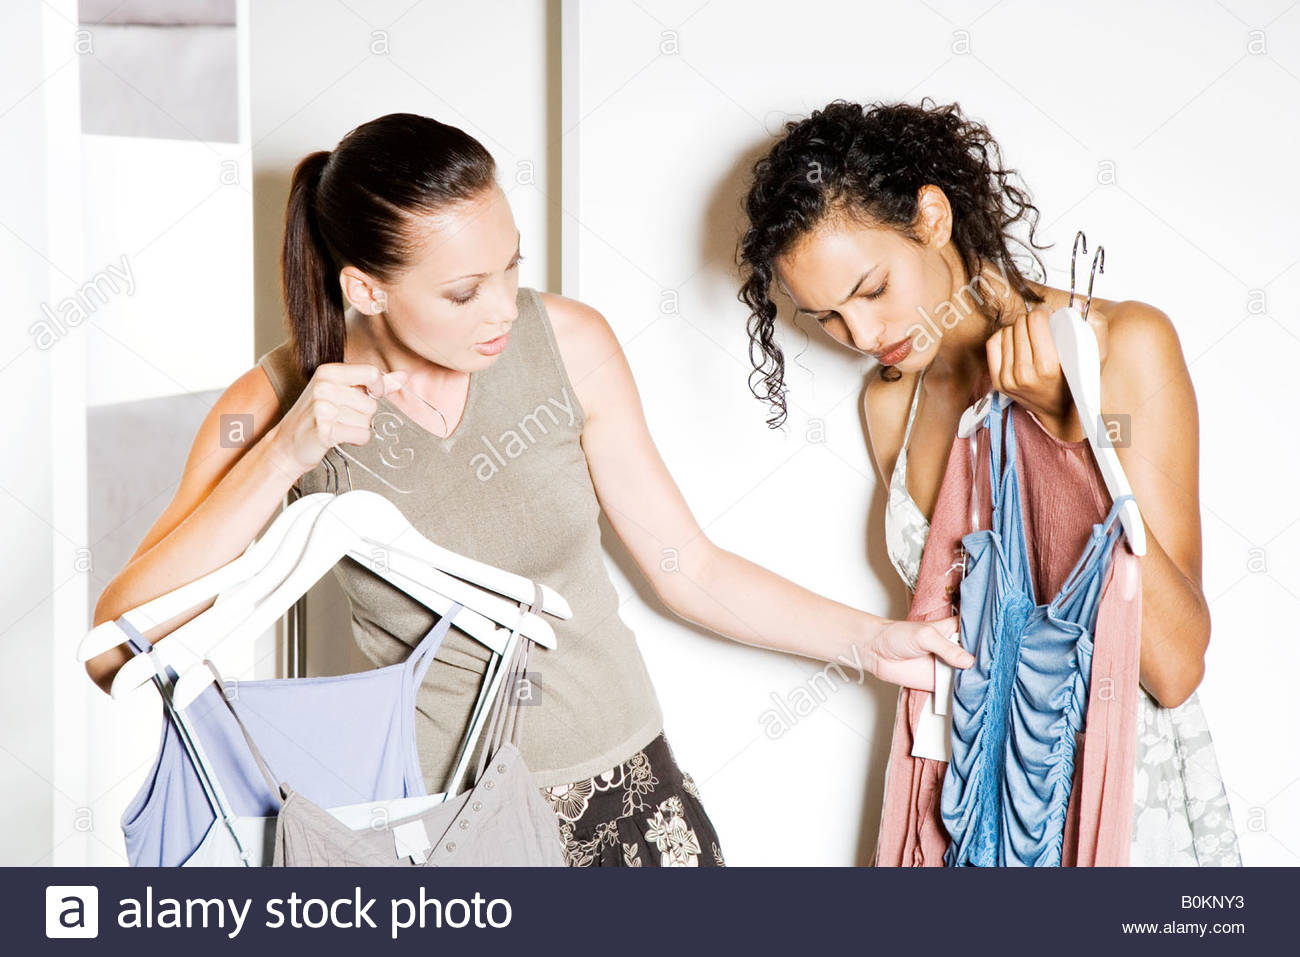 Two friends outside the changing room of a shop, waiting to try on clothes - Stock Image